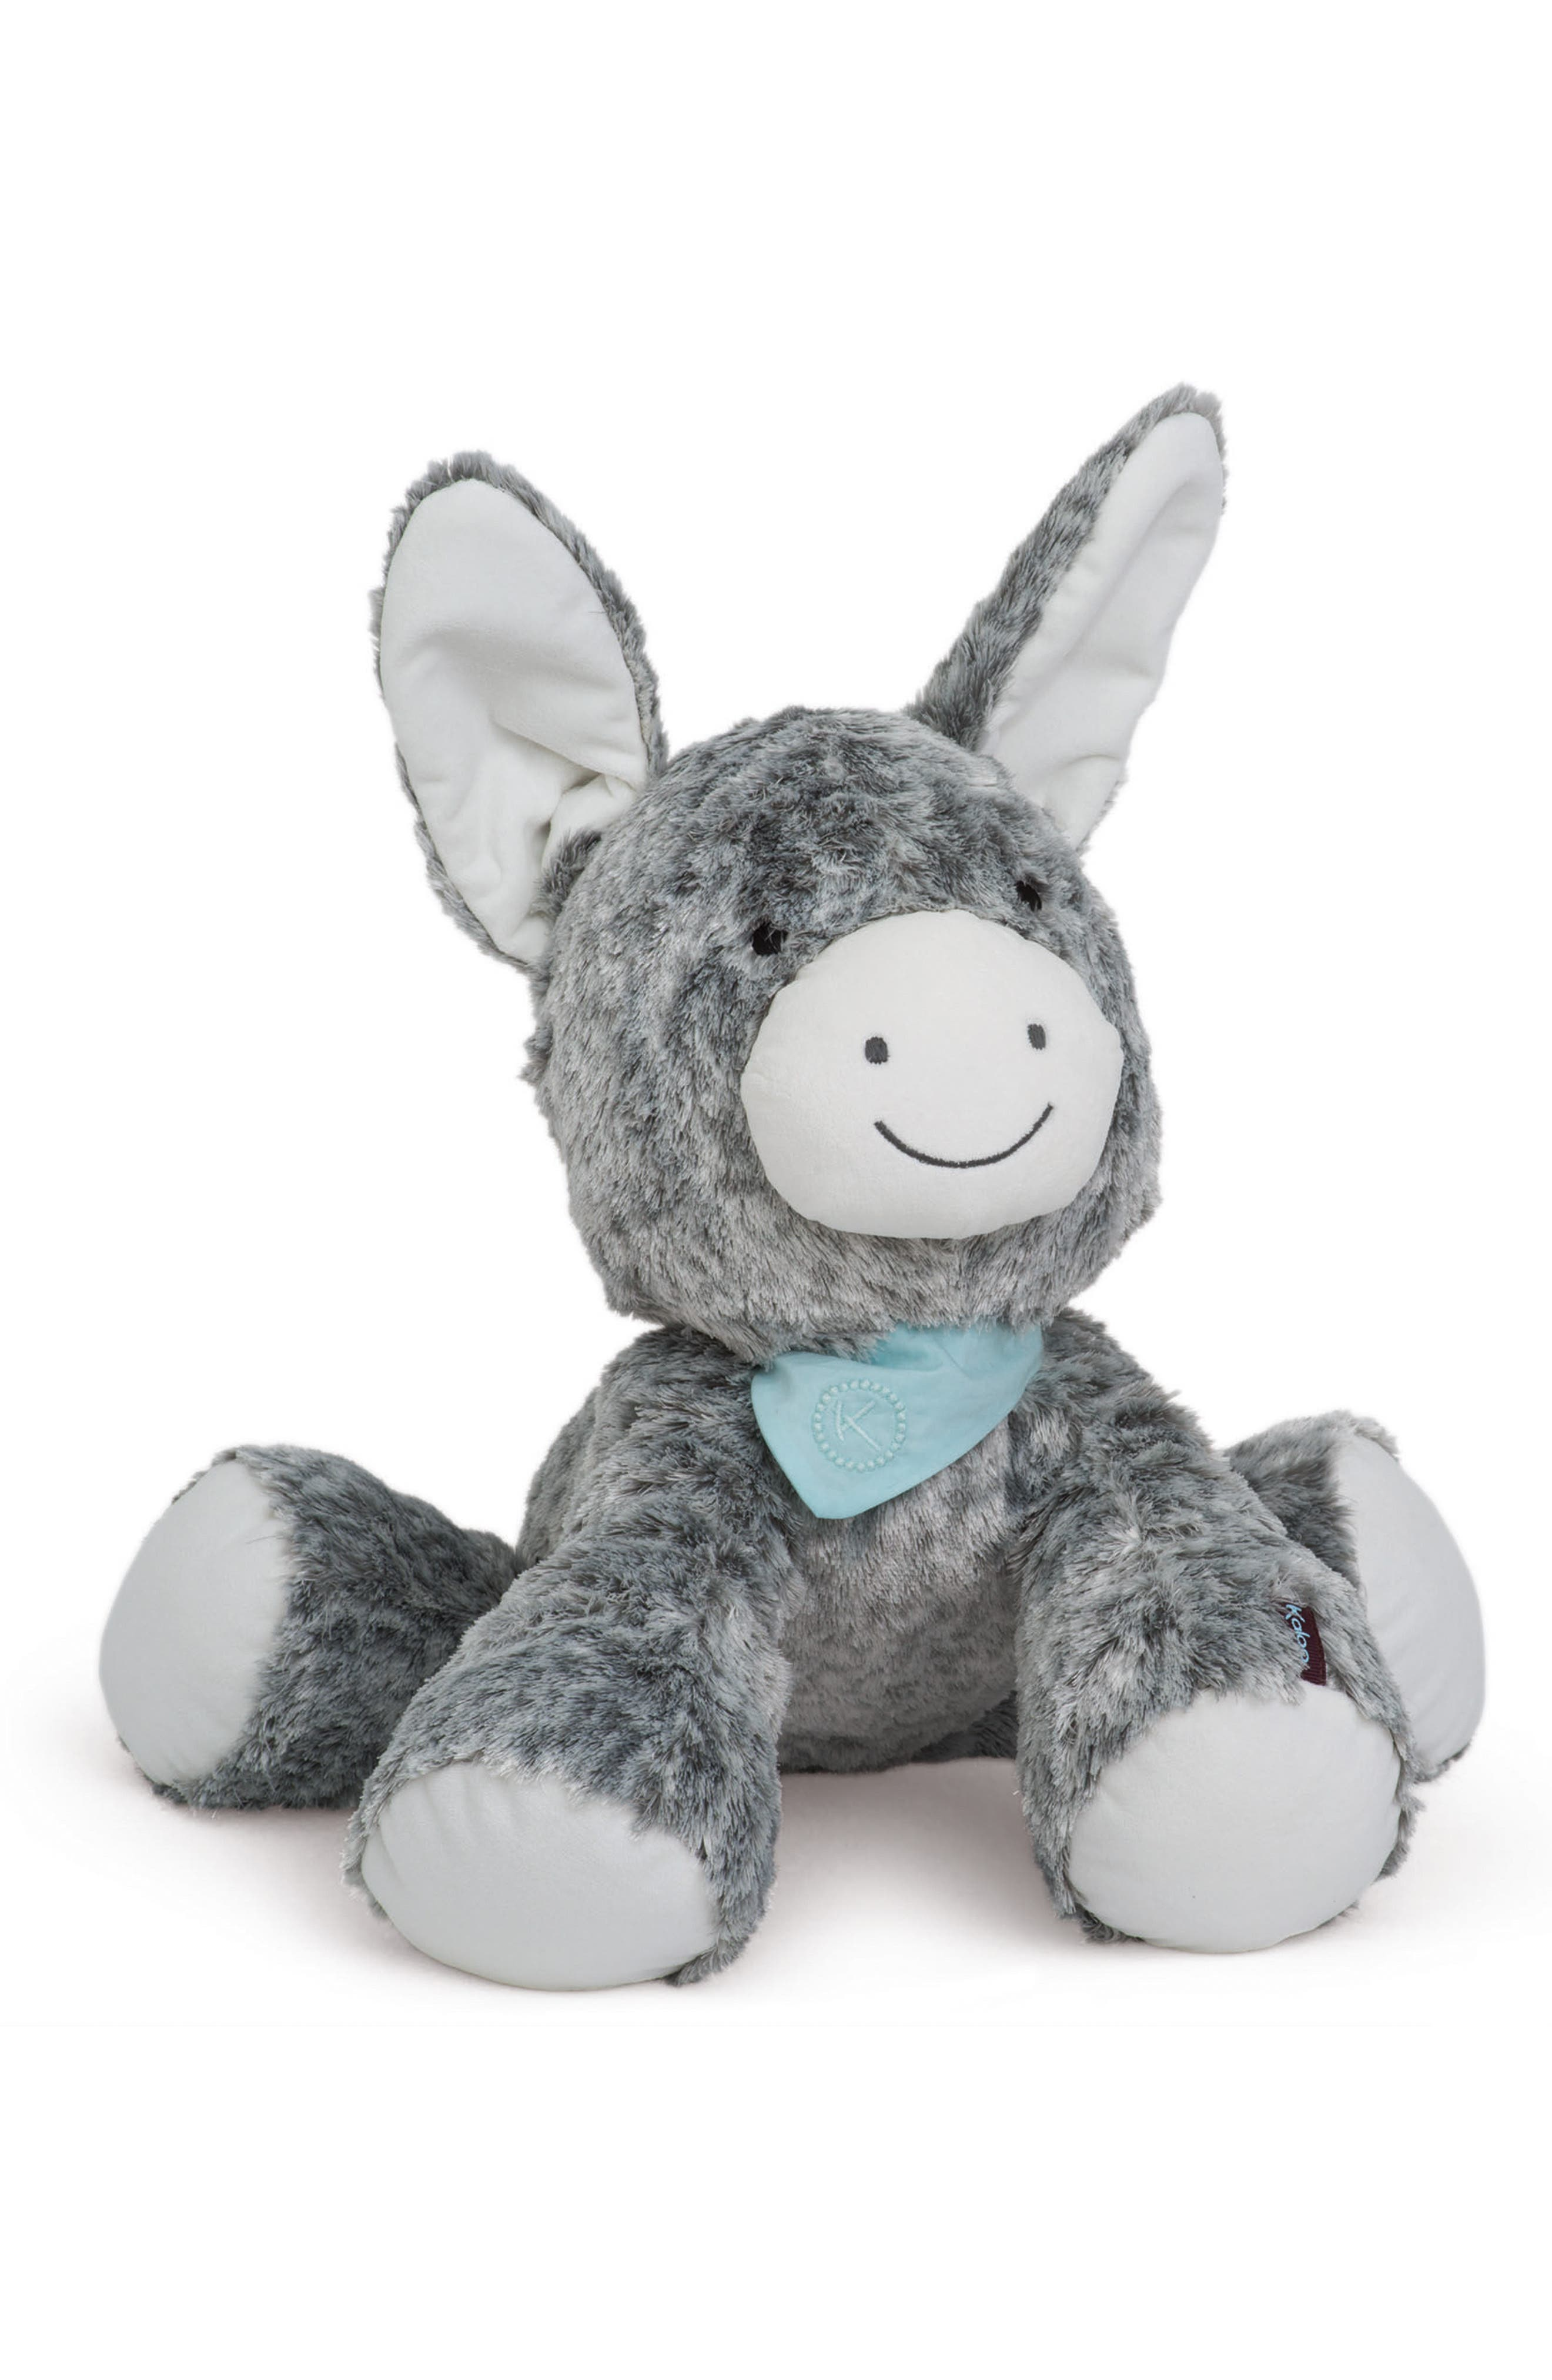 Regliss the Donkey Stuffed Animal,                         Main,                         color, Grey